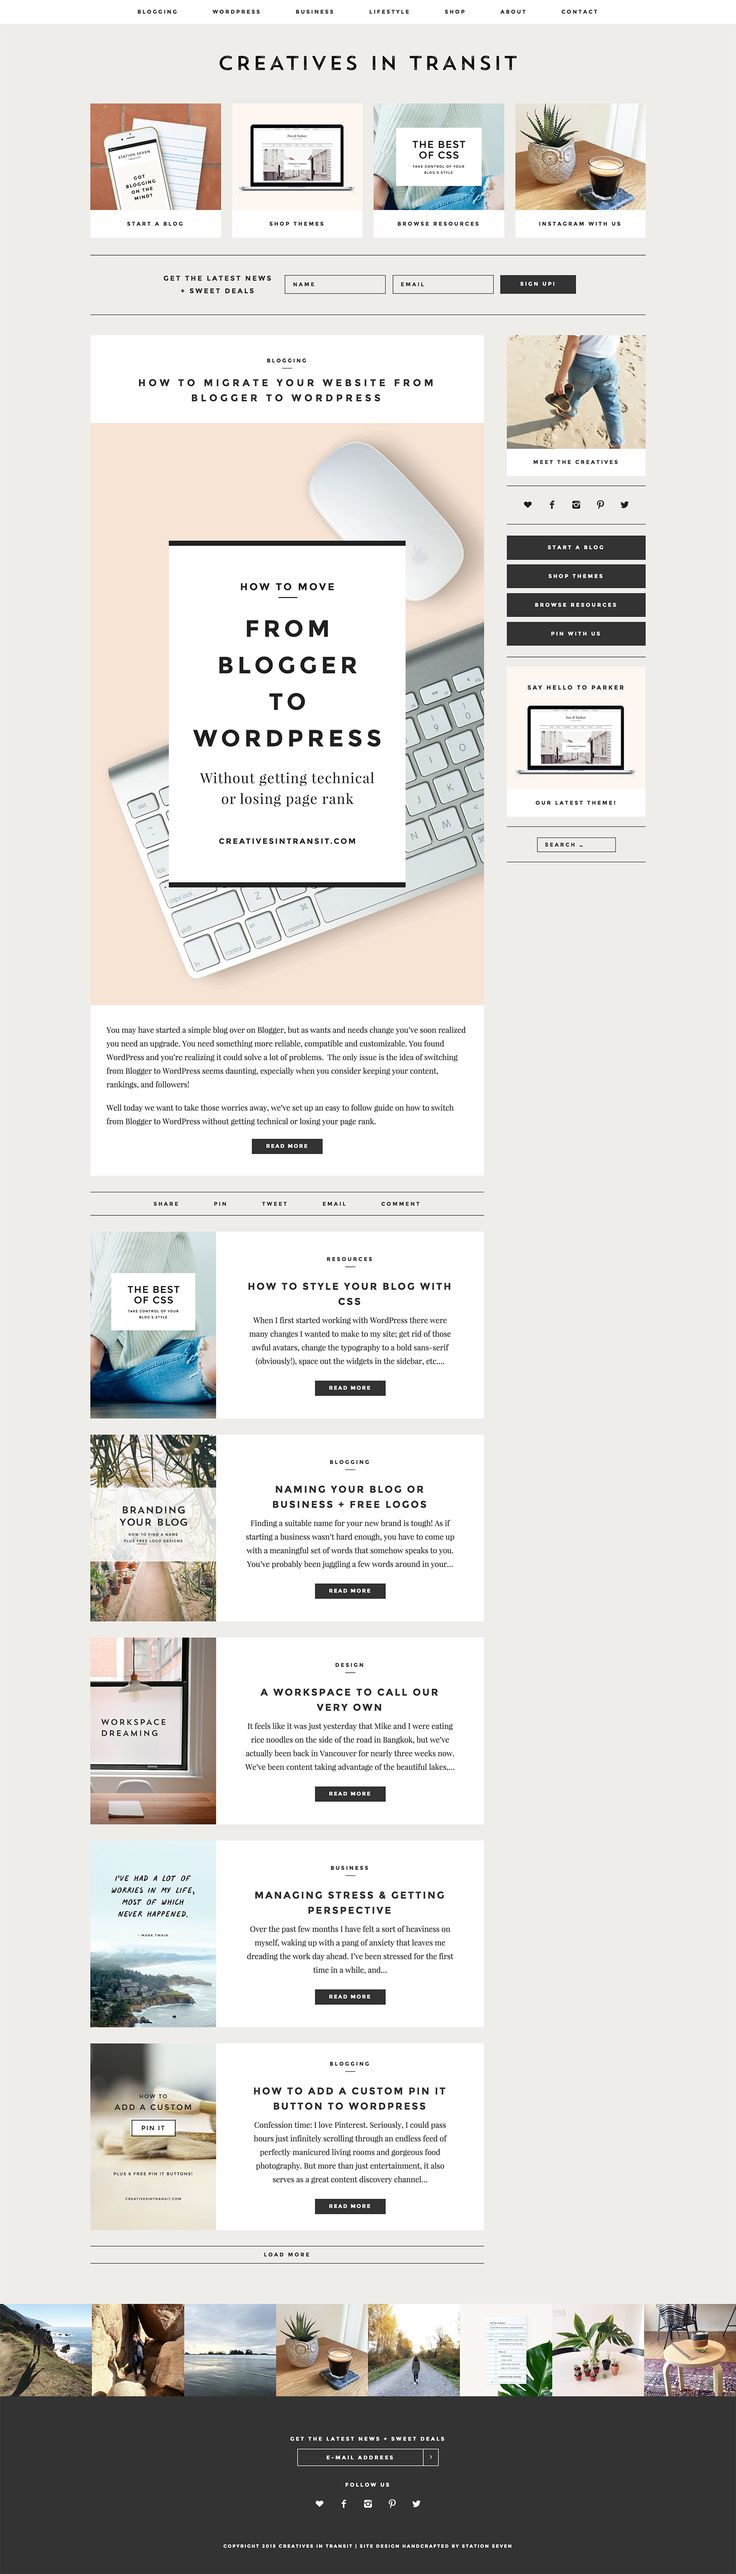 A new blog design for Creatives In Transit crafted by Station Seven - Lots of great resources for bloggers + small biz owners #wordpress #webdesign